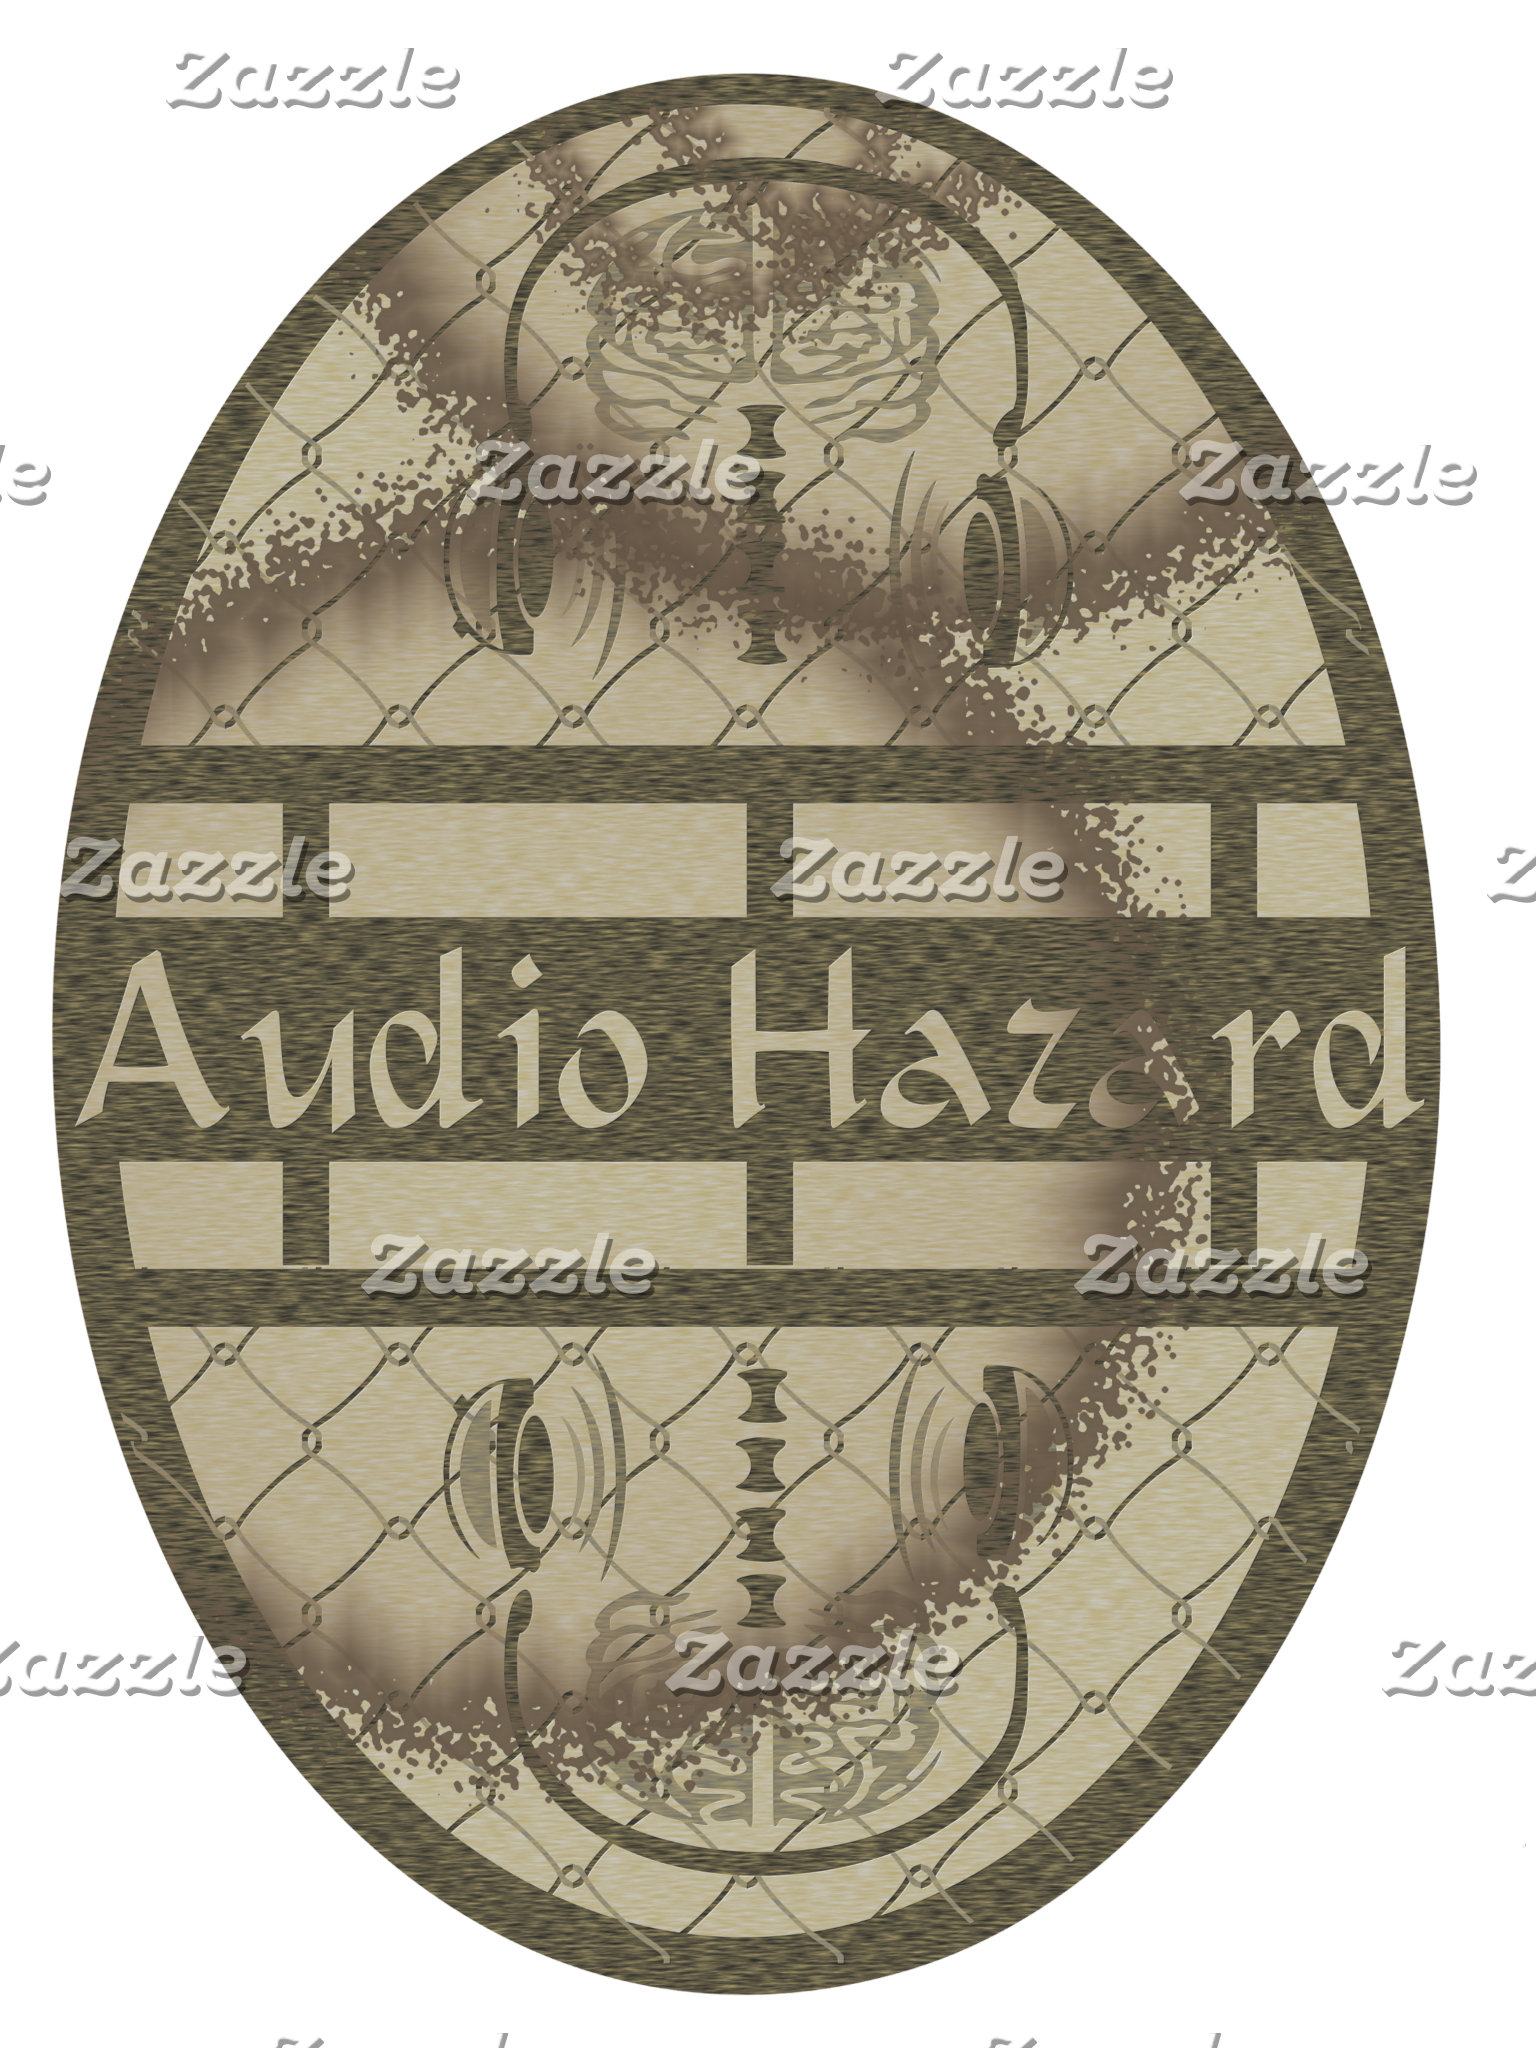 Audio Hazard